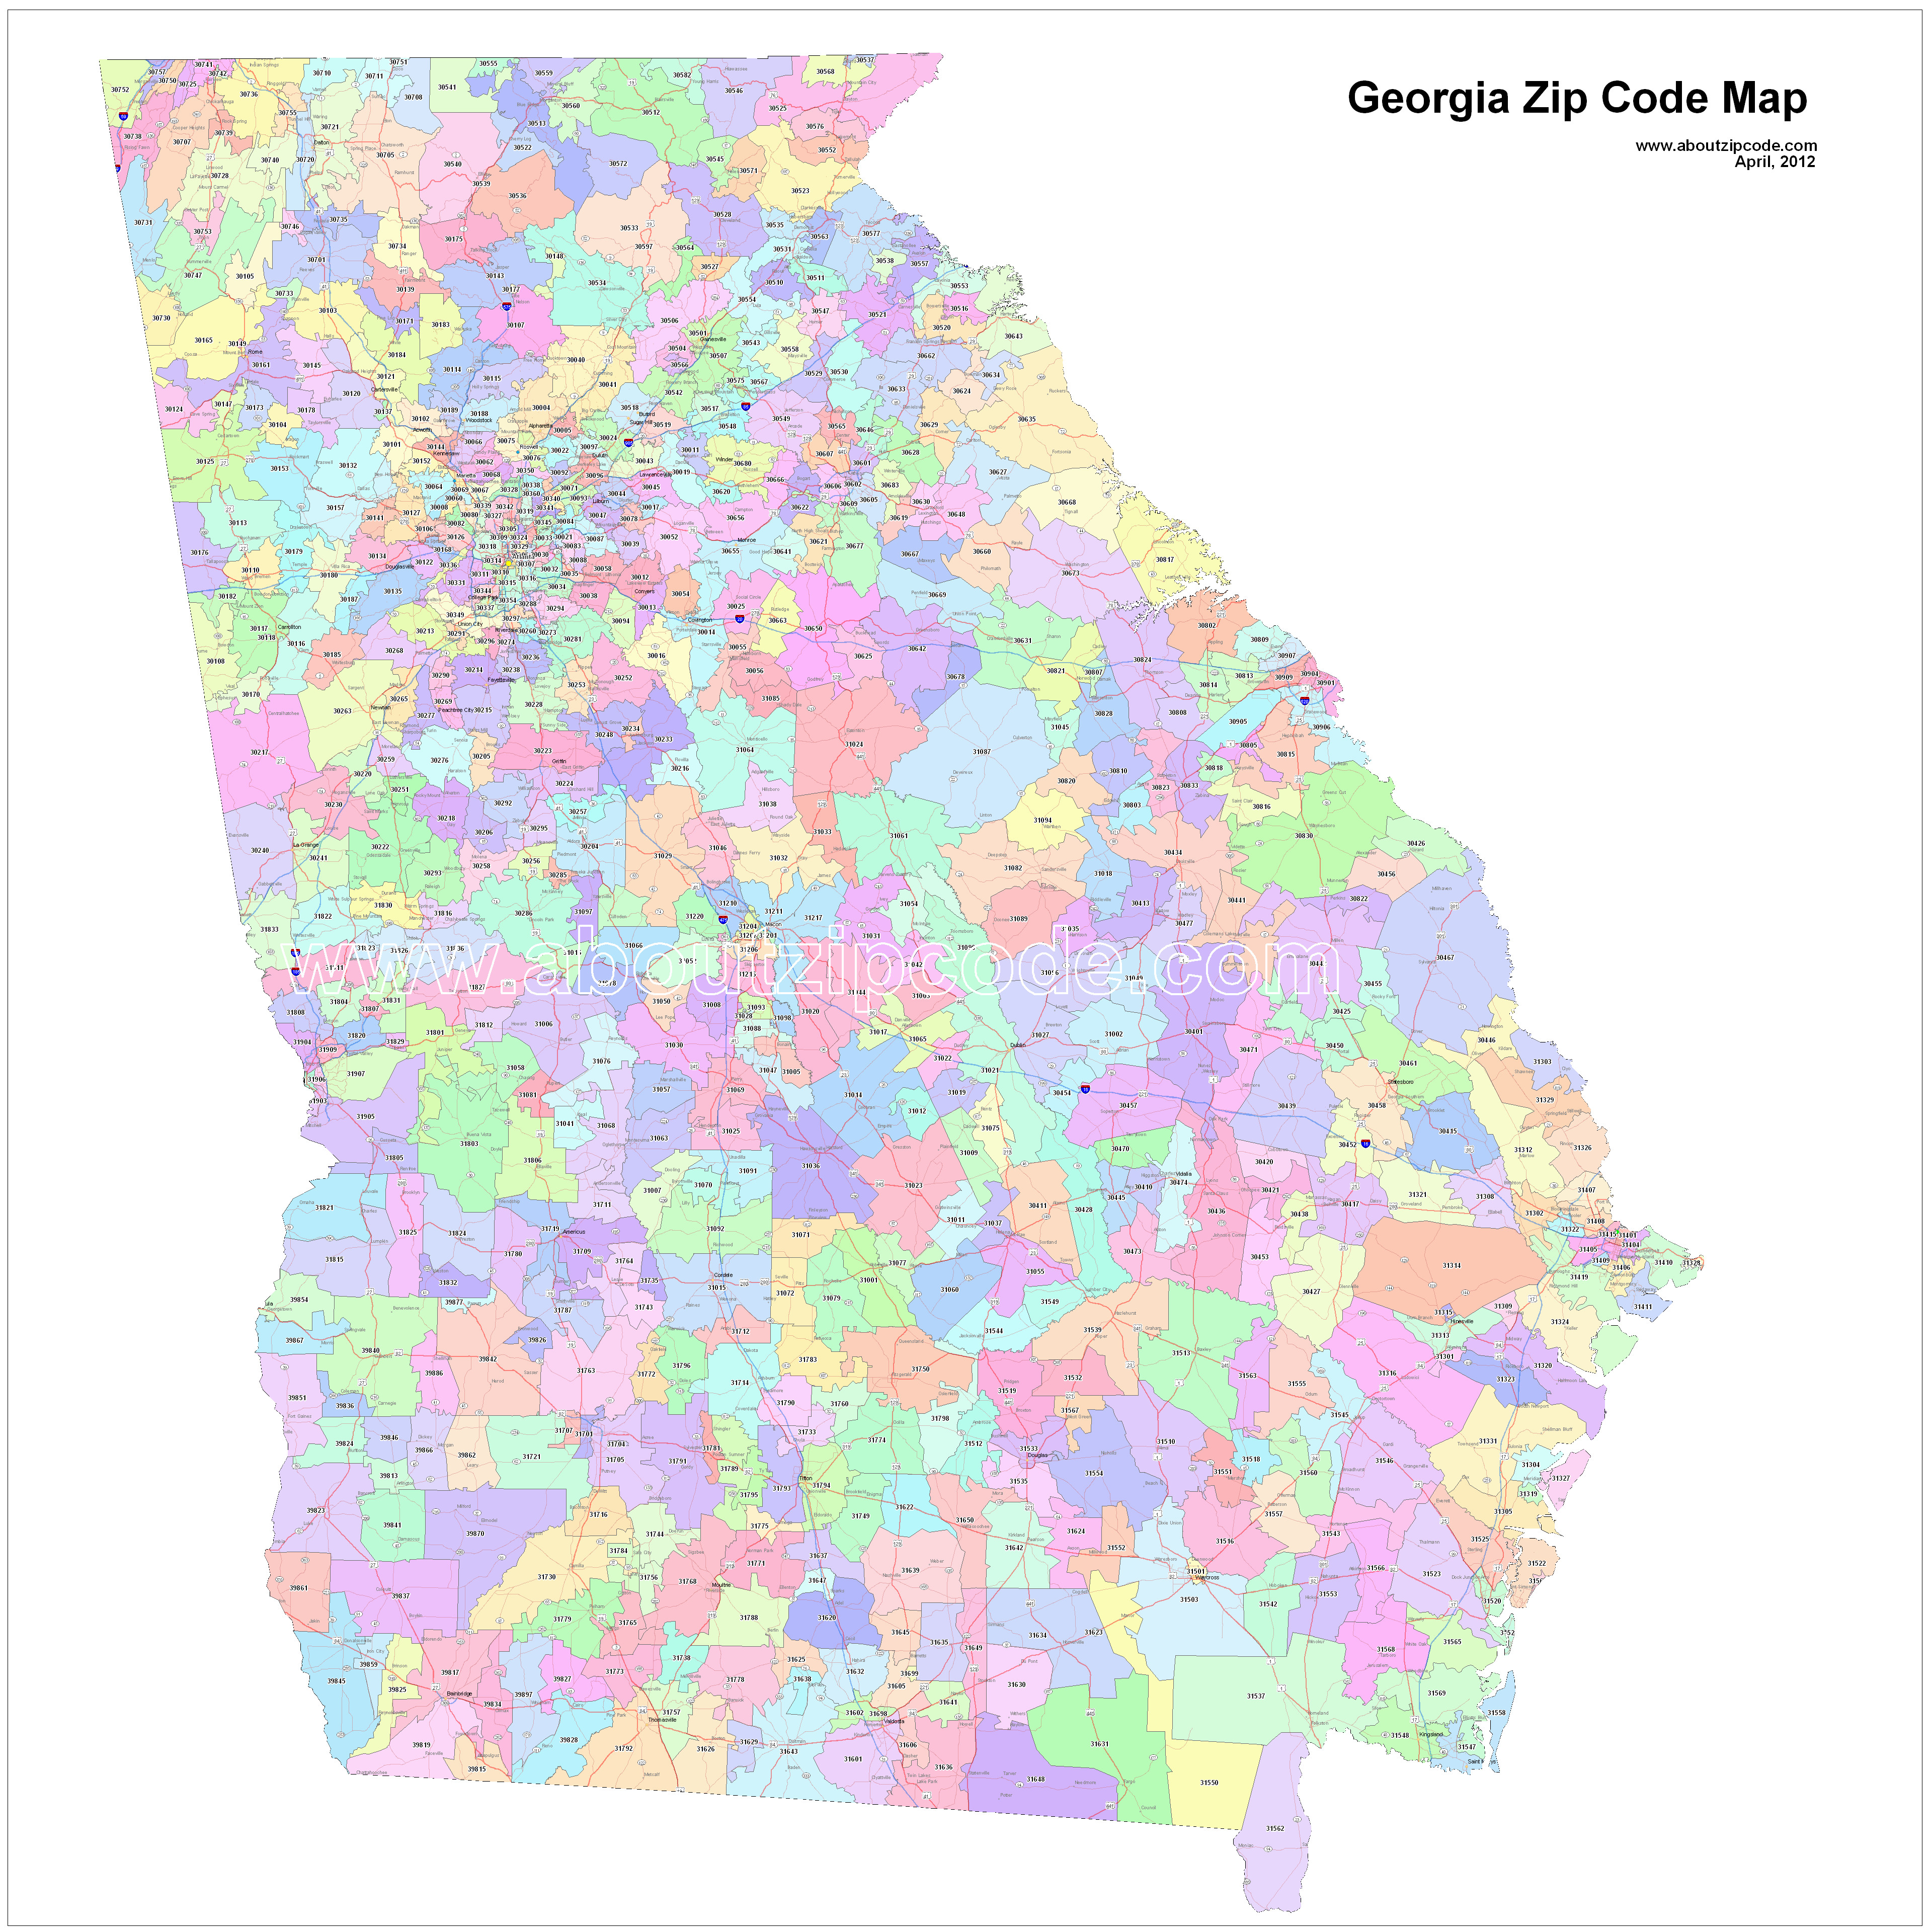 California Map With Zip Codes Printable Georgia Zip Code Maps Free - Free Printable Zip Code Maps